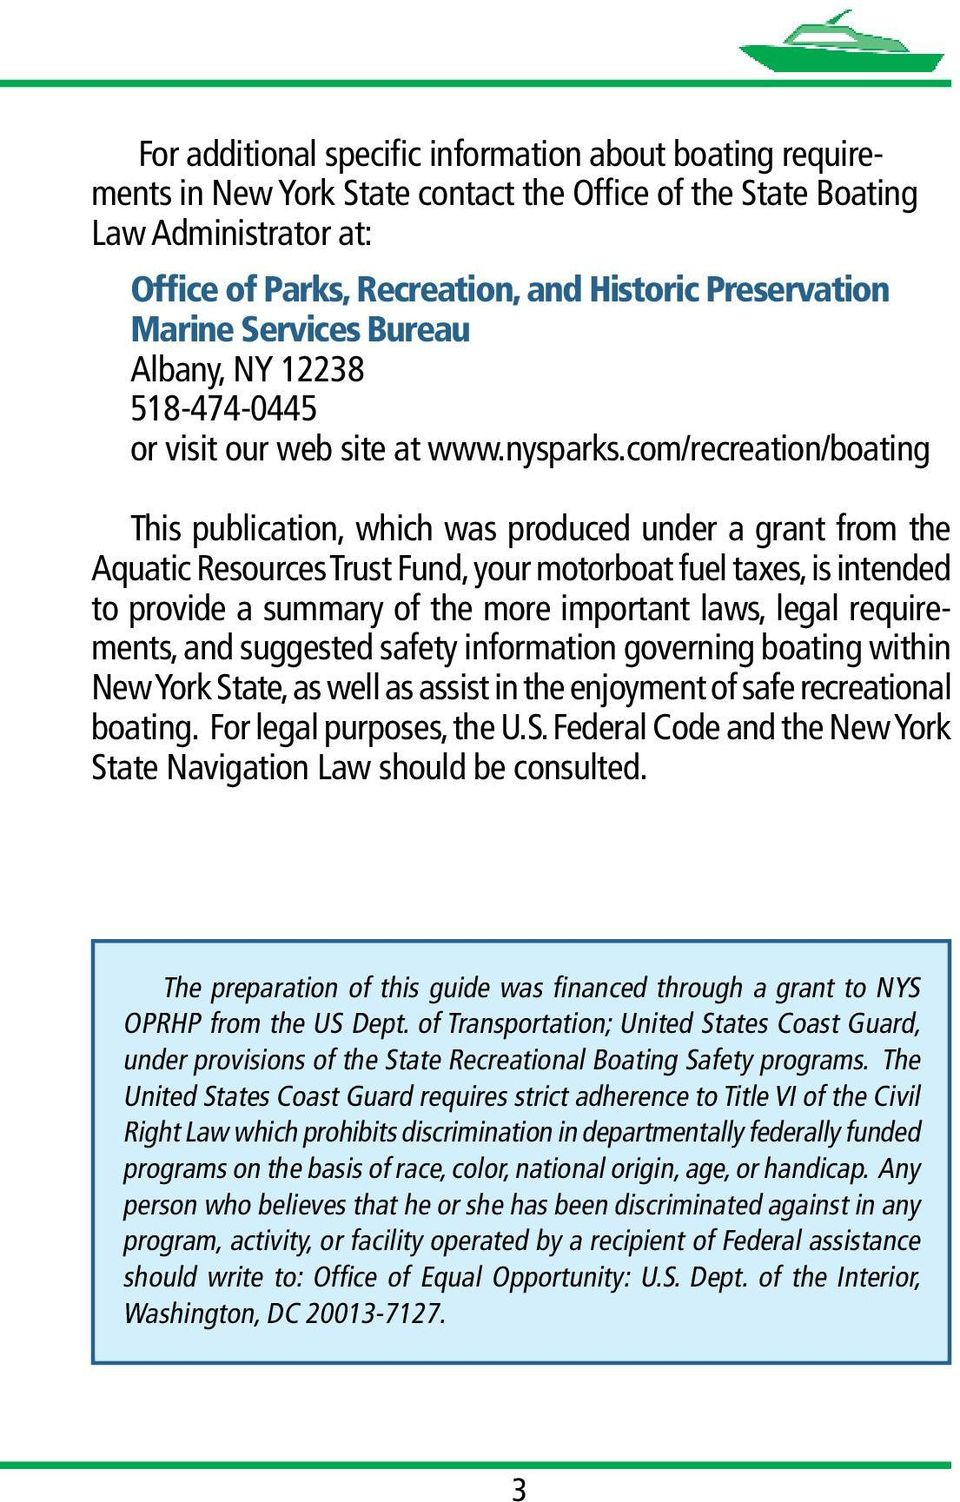 com/recreation/boating This publication, which was produced under a grant from the Aquatic Resources Trust Fund, your motorboat fuel taxes, is intended to provide a summary of the more important